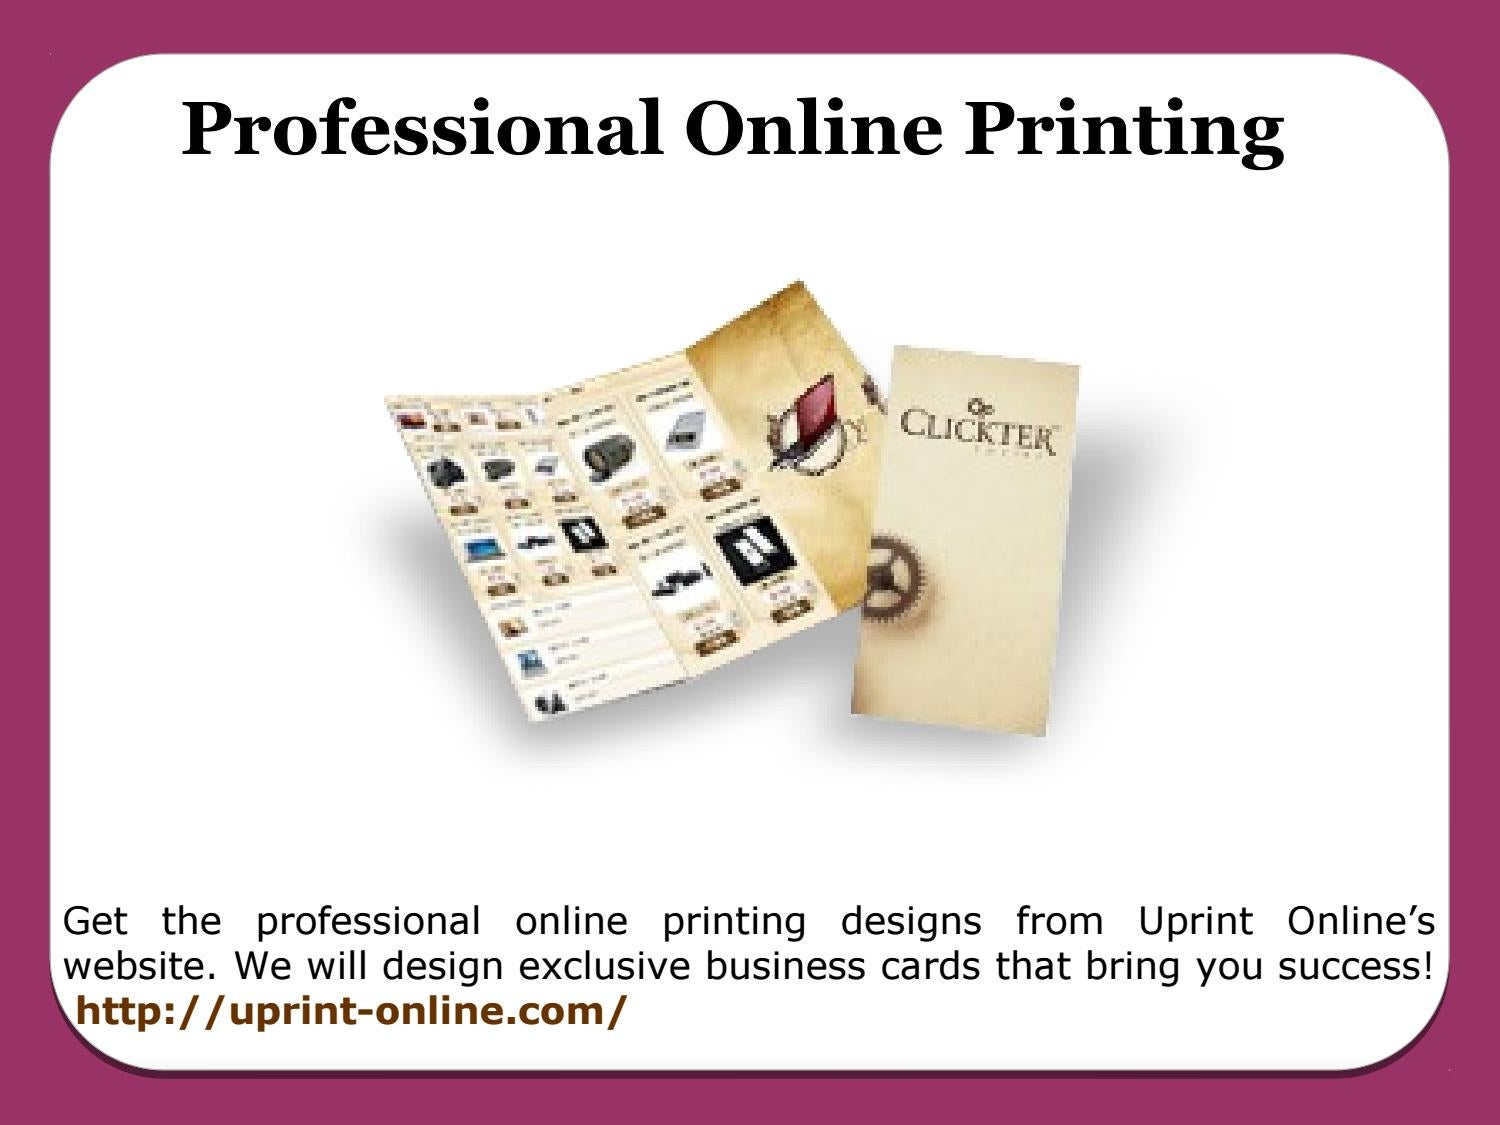 Business Cards Online Printing by James Woodward - issuu